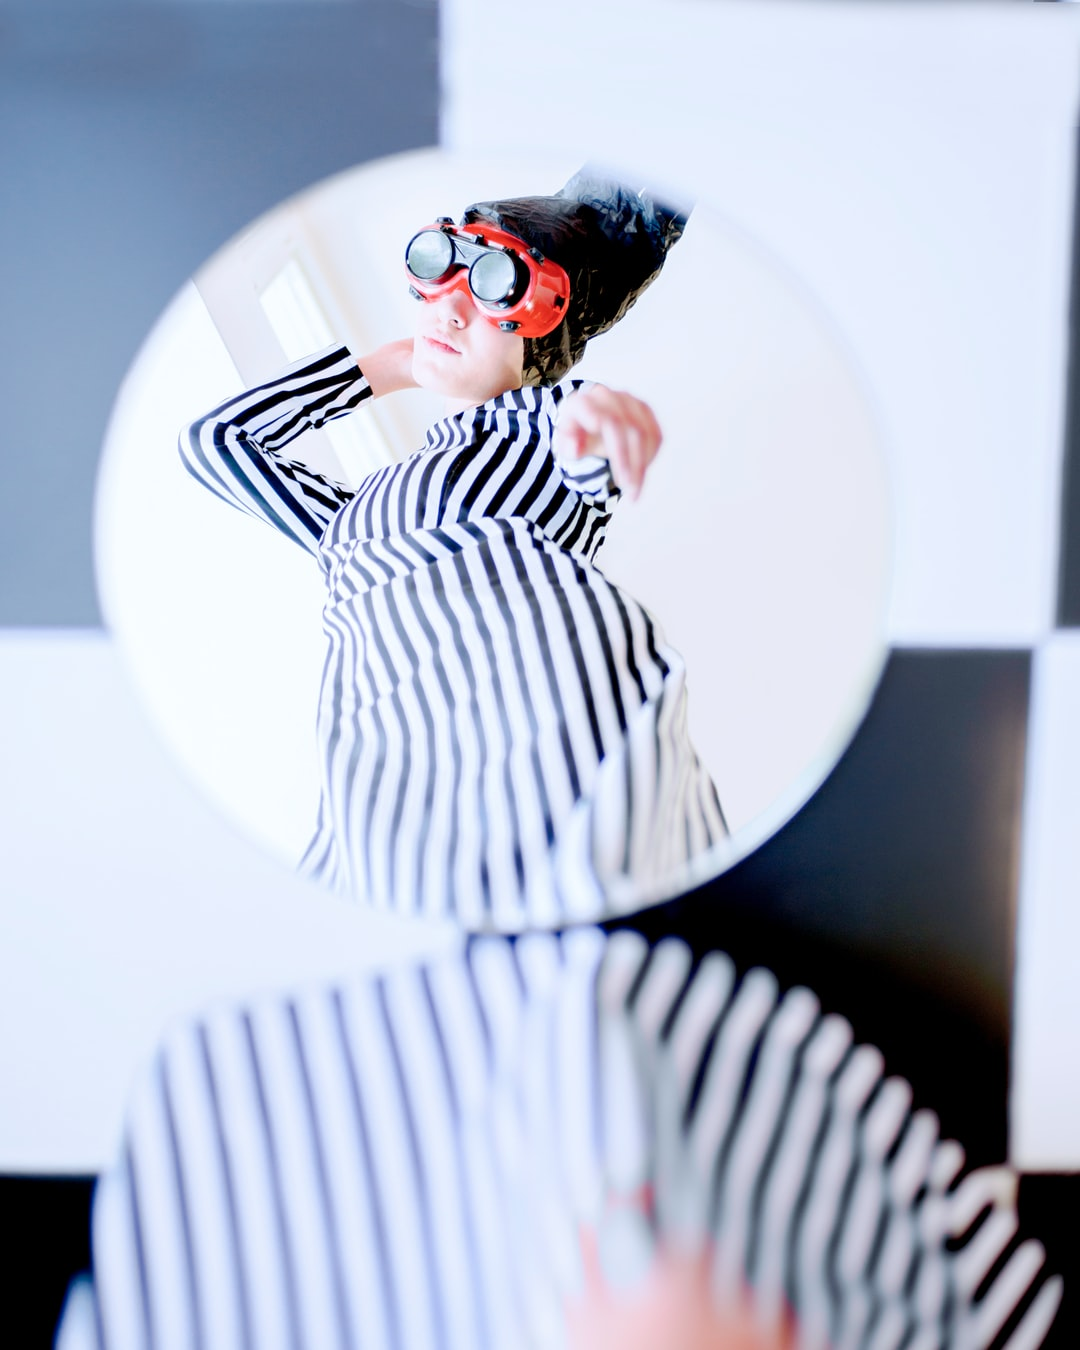 In this photo set, the locations will change along with the elements. Humans in various locations have different behavioral reflection and even use shades to hide their real behavior. The reason for the female subject in these photos is the feminine complexity inherent in them. The reason for the striped dress, however, was to create a sense of vagueness and hallucination in the observer. Mirrors, on the other hand, demonstrate the sense of reflection